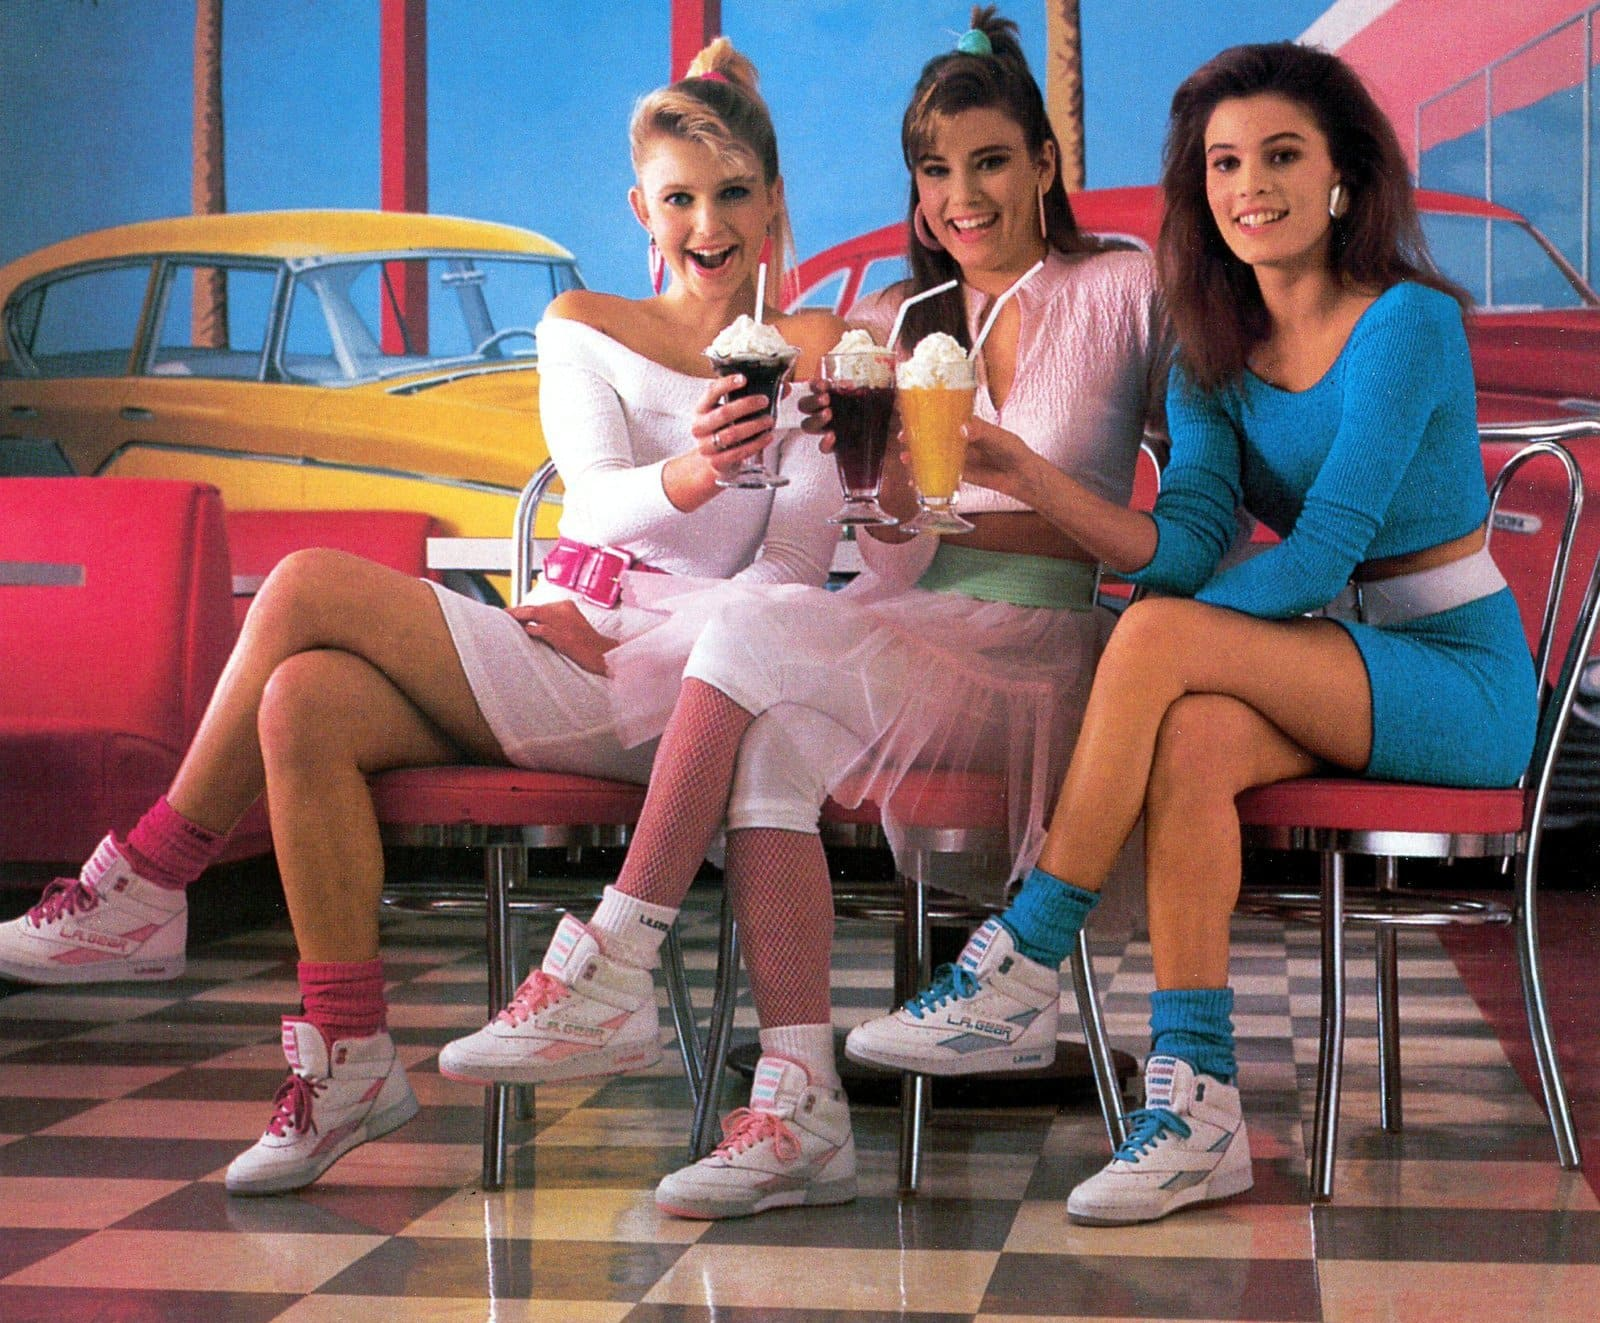 Three 80s girls with colorful socks in a faux soda shop